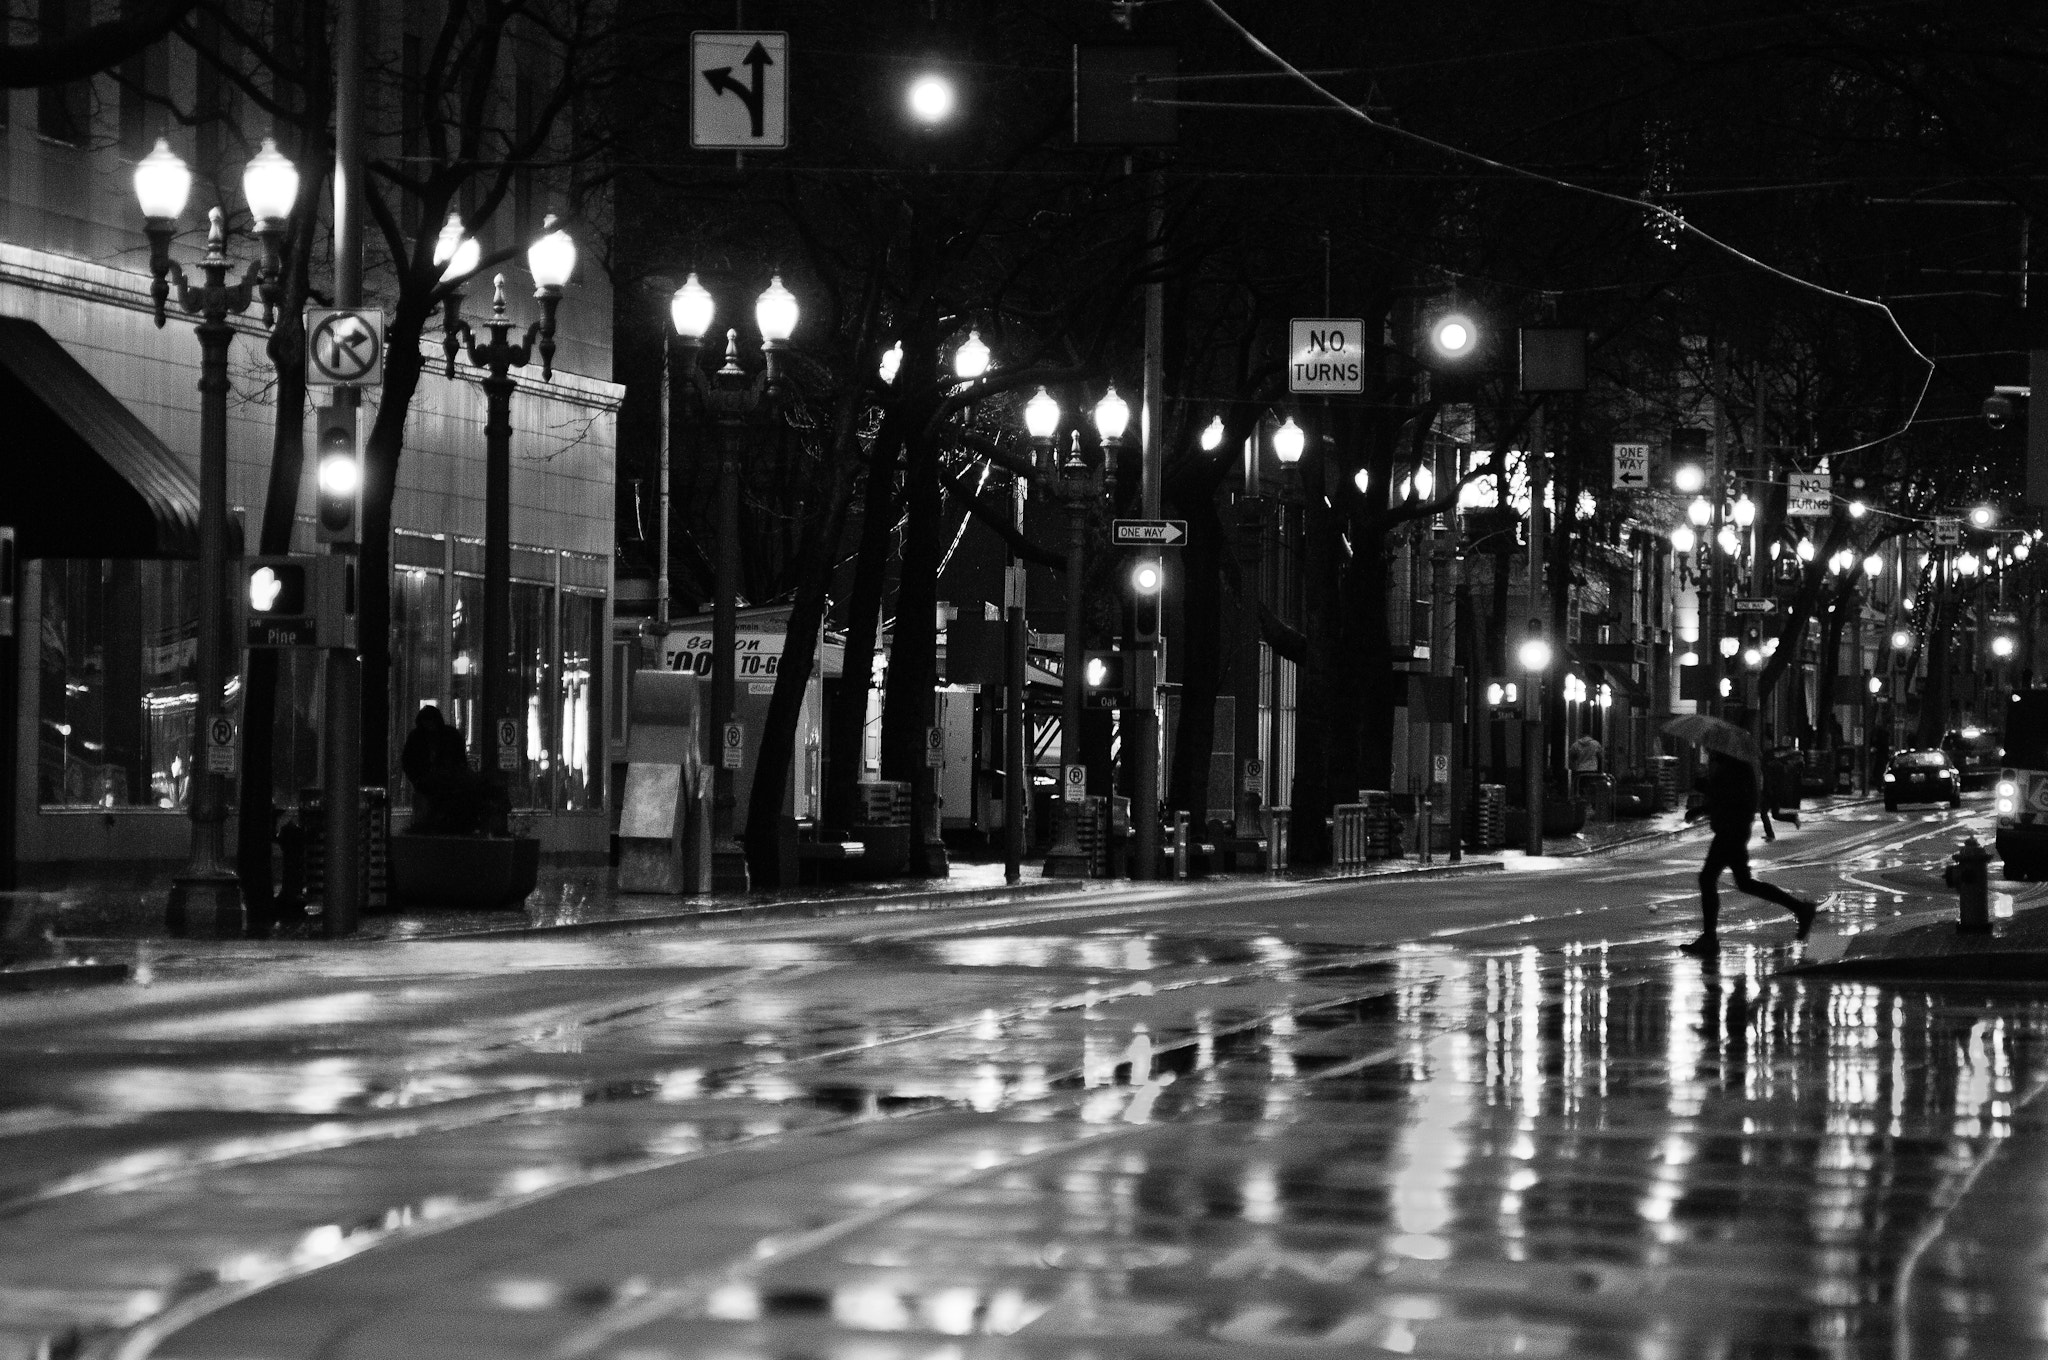 Photograph A rainy night in Portland by Dennis Rivera on 500px